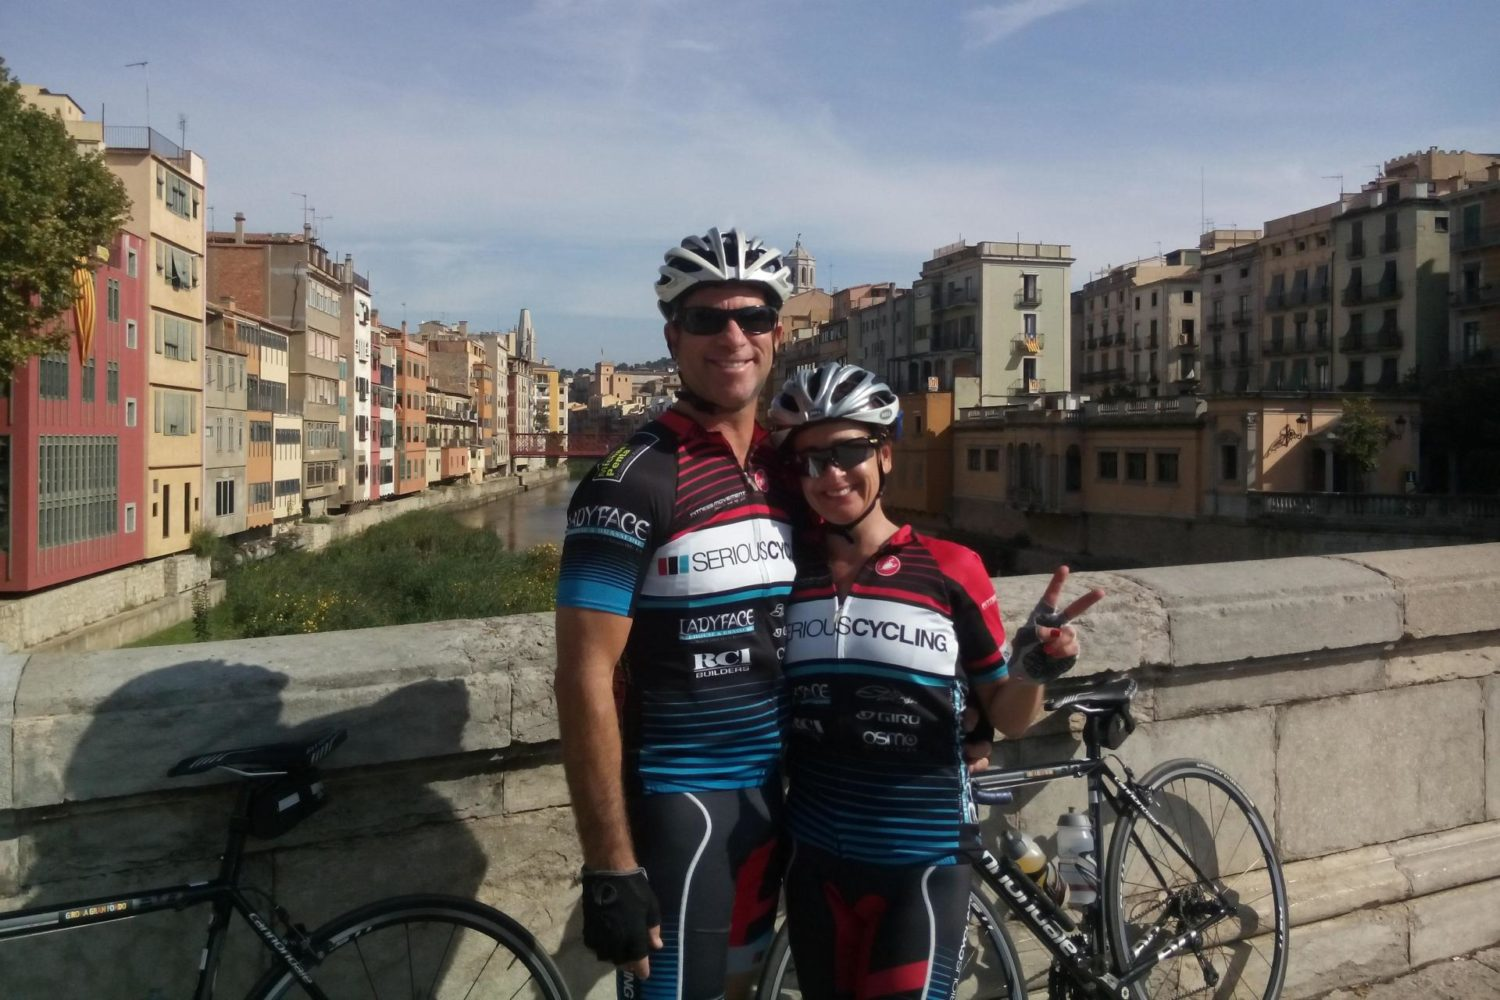 Self-guided cycling tour of Spain - Costa Brava Explorer Challenge Biking Tour